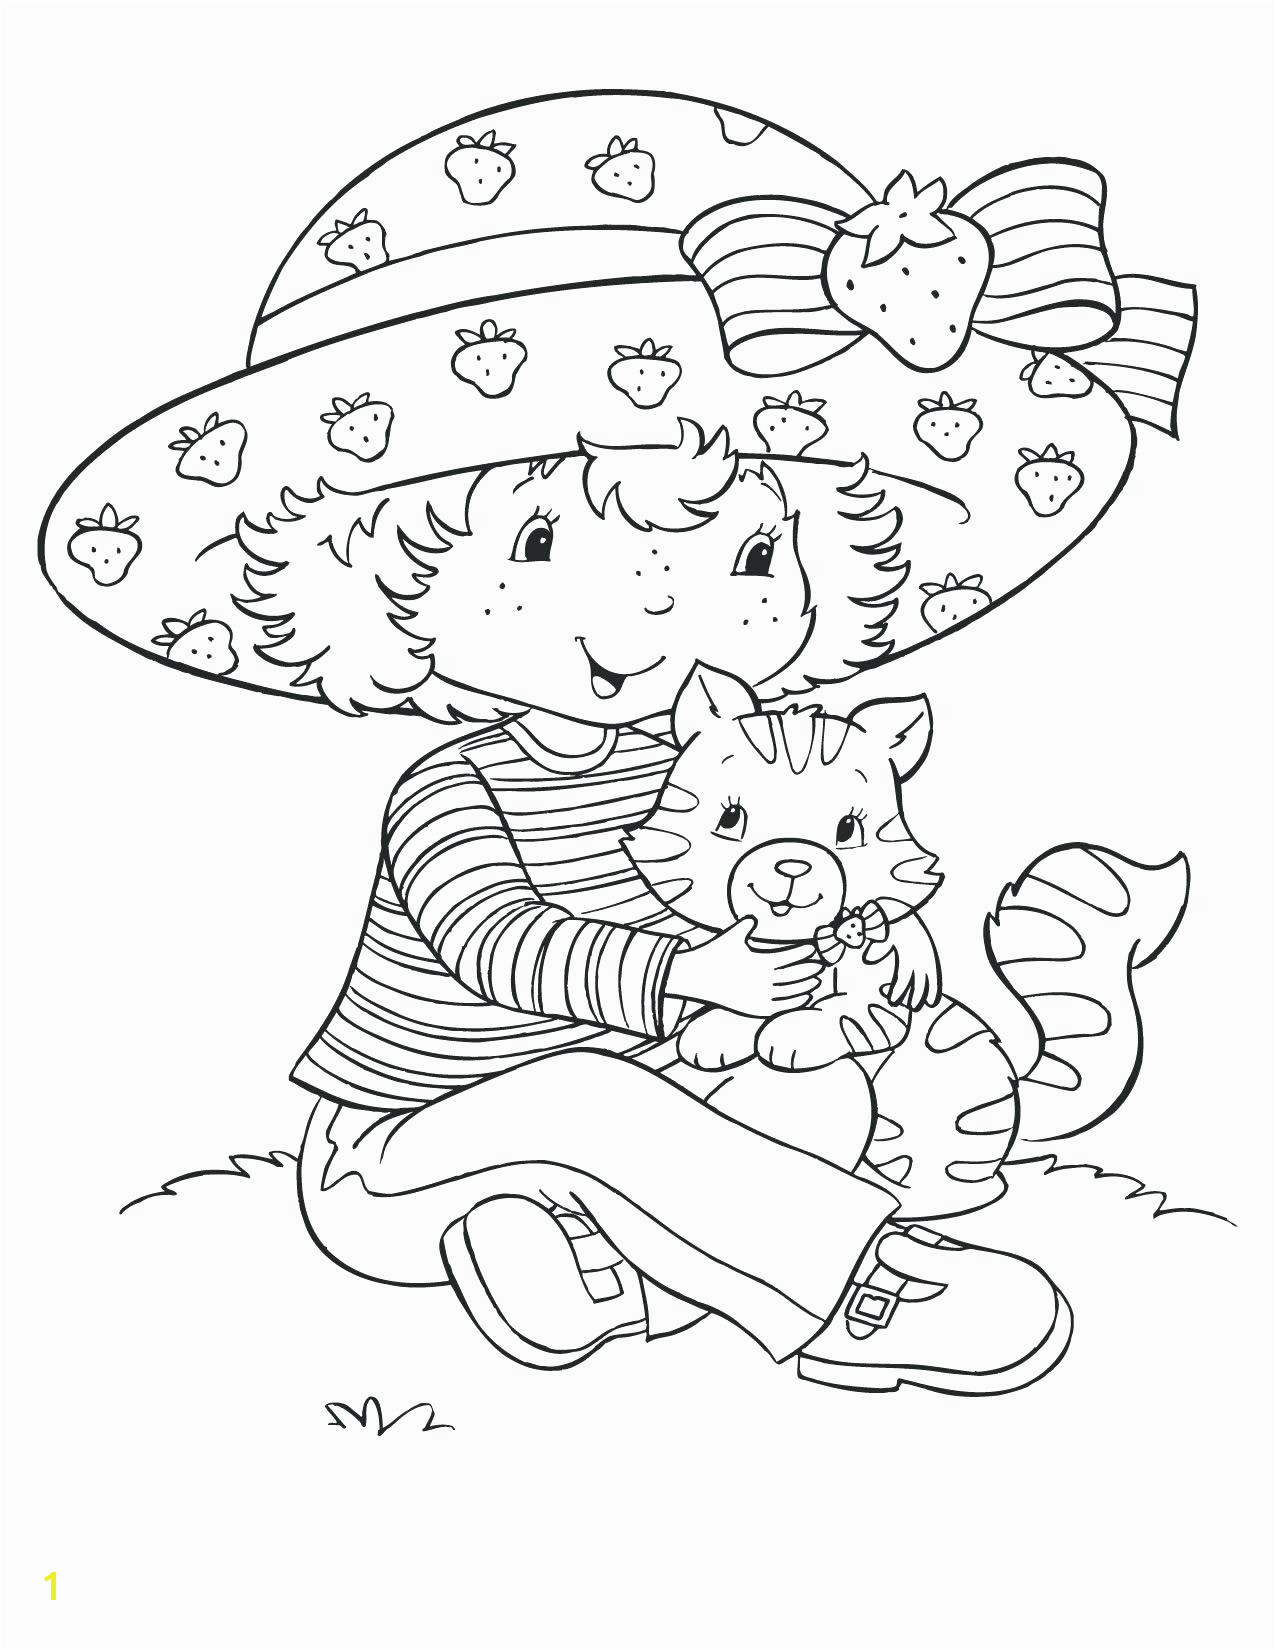 Strawberry Shortcake Doll Coloring Pages Strawberry Shortcake Doll Coloring Pages Coloring Pages Coloring